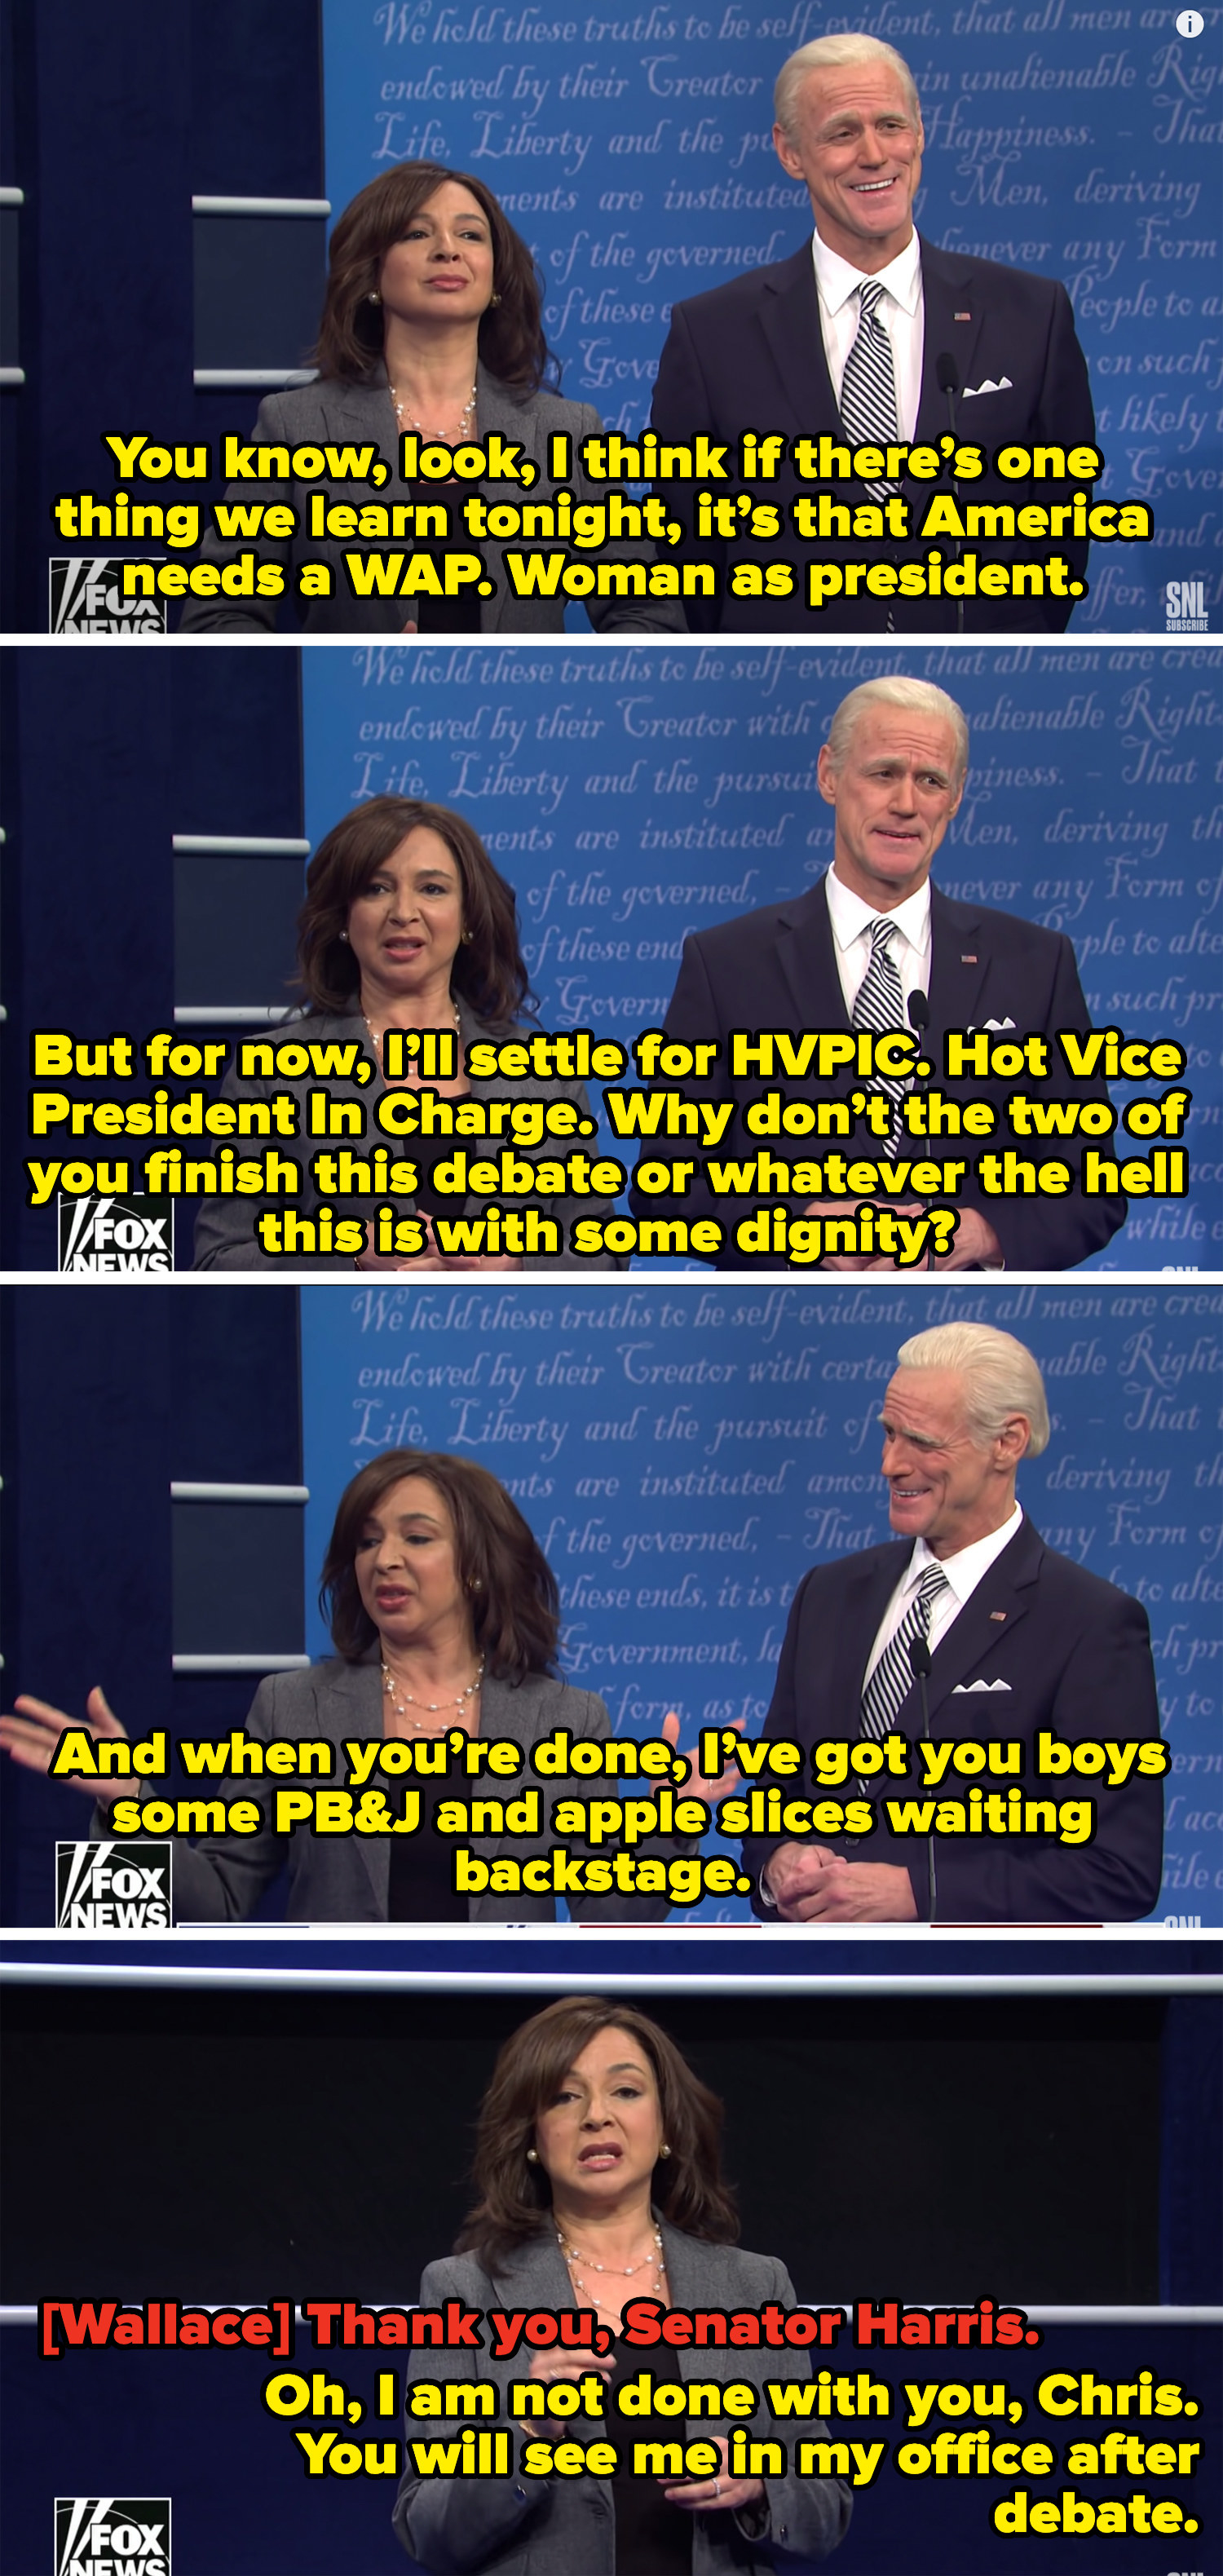 Rudolph as Harris talking about being the Hot Vice President In Charge, having snacks for the nominees backstage like a mom, and seeing Chris in her office after